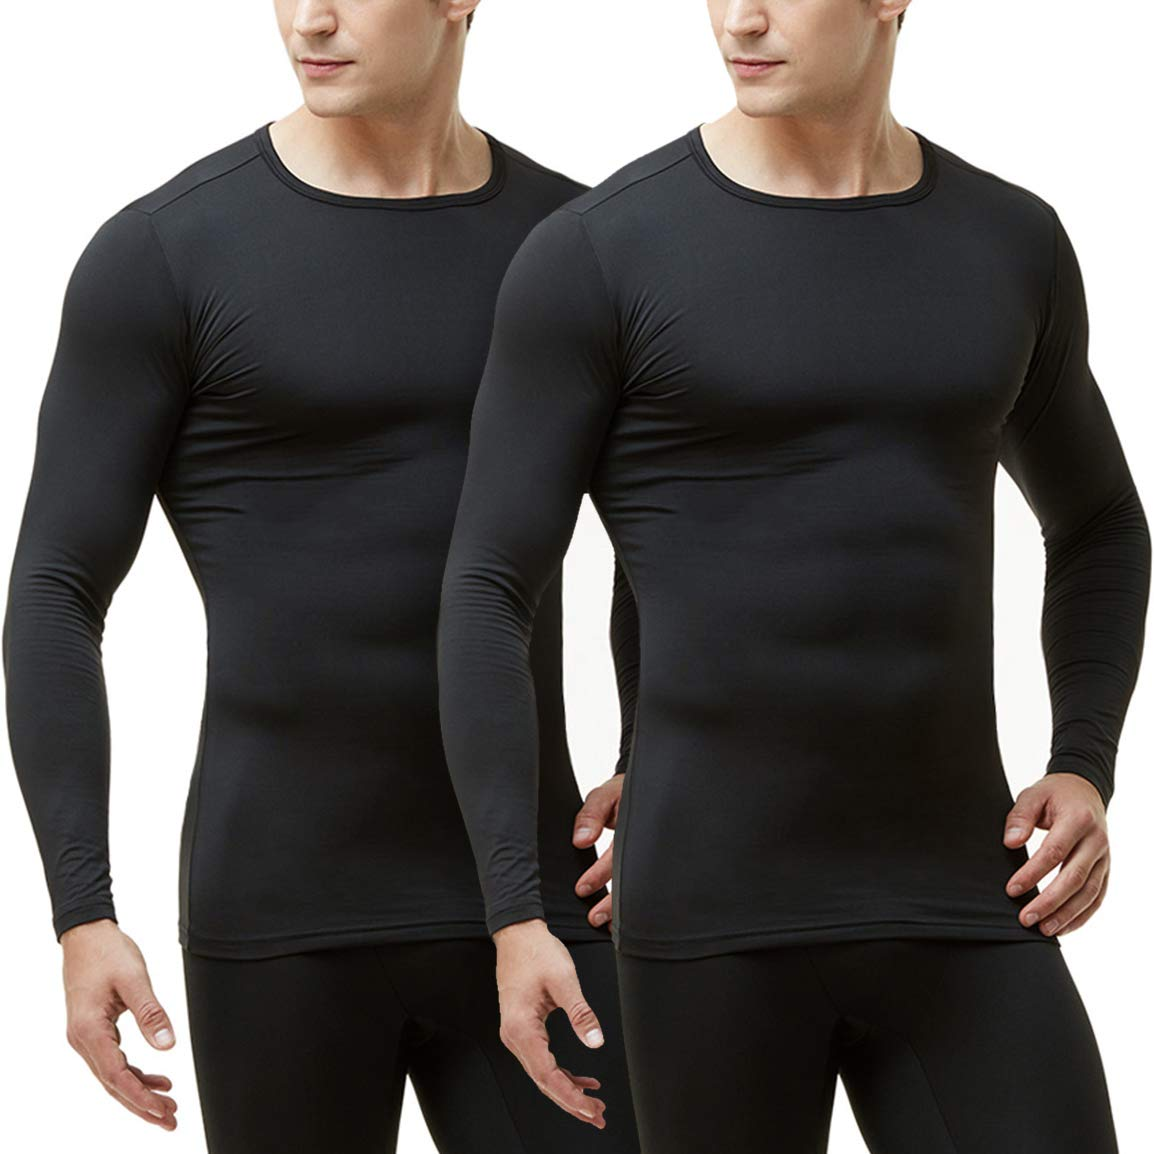 TSLA Men's (Pack of 2) Microfiber Fleece Lined Thermal Winter Top, 2pack(mht102) - Black, Large by TSLA